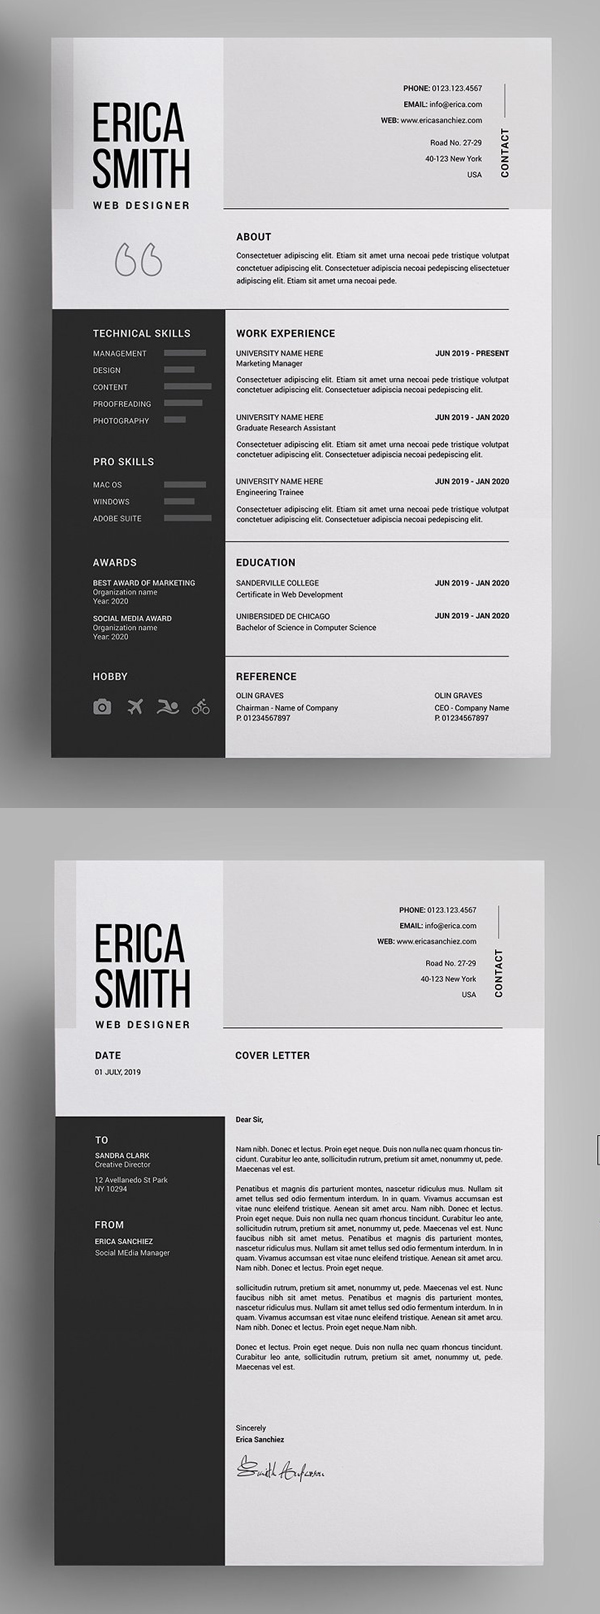 50 Best Resume Templates Of 2020 - 16